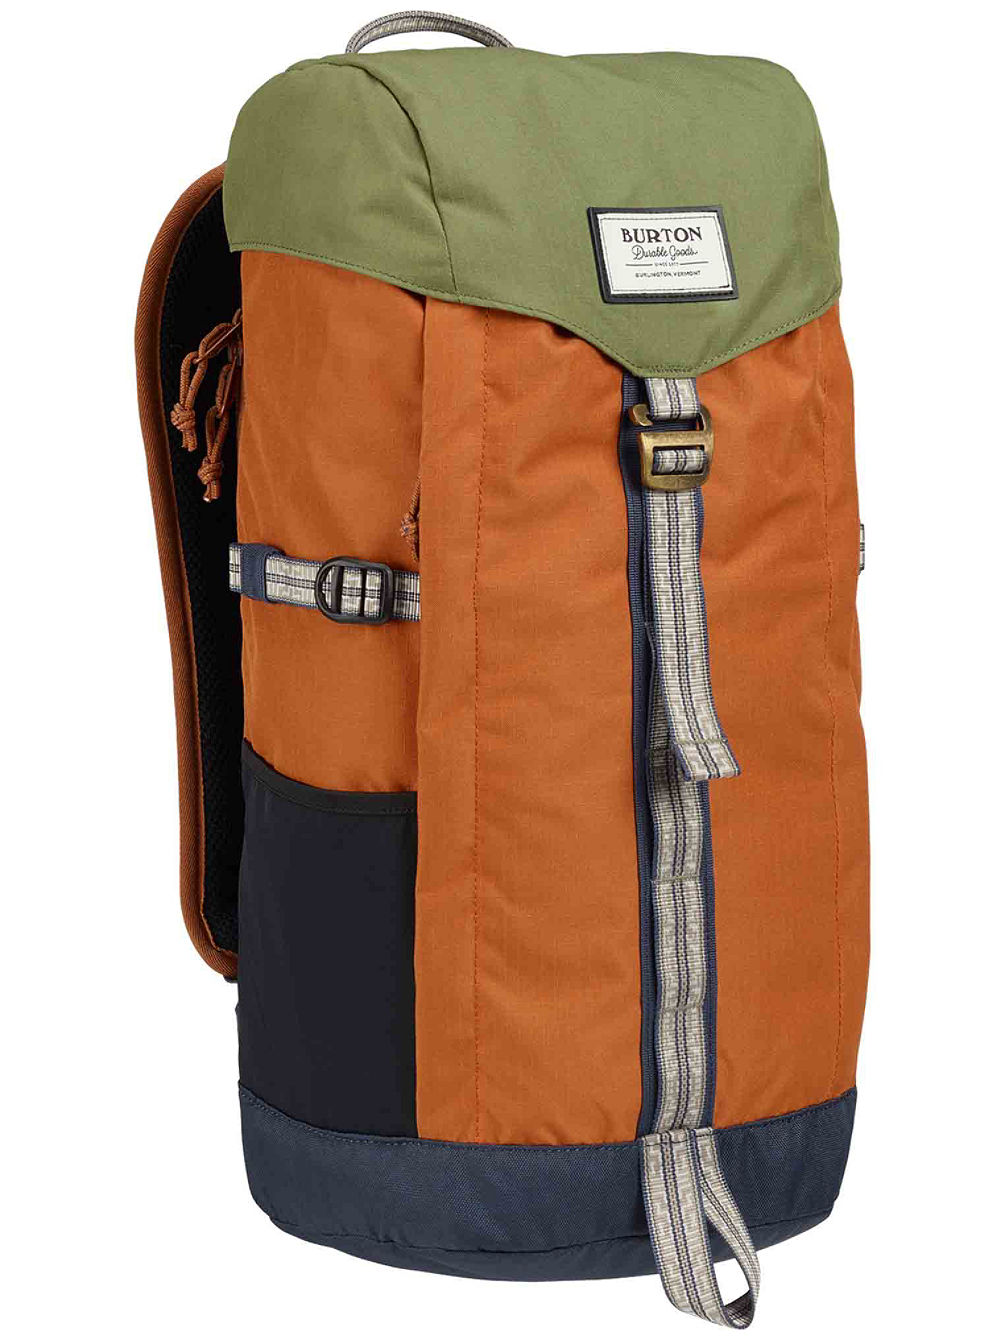 Buy Burton Chilcoot Backpack online at blue-tomato.com 8f5b0c7278